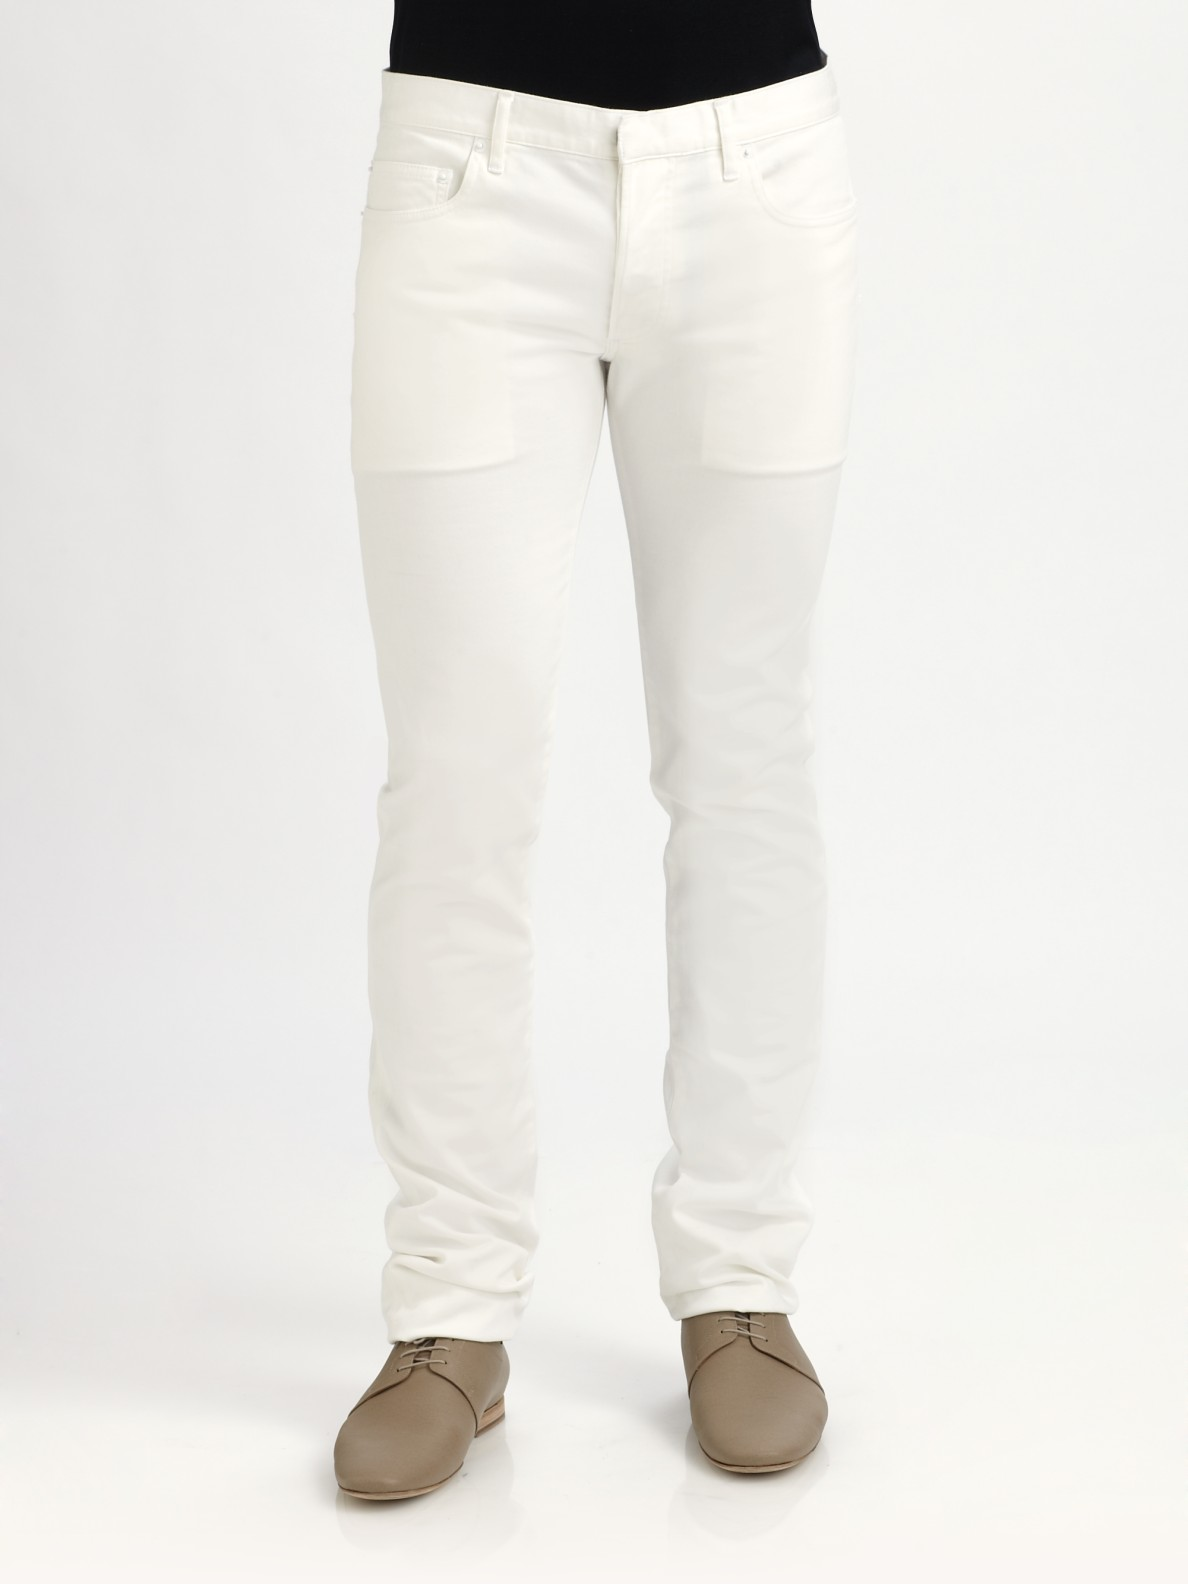 Lyst Dior Homme Slim Fit White Jeans In White For Men